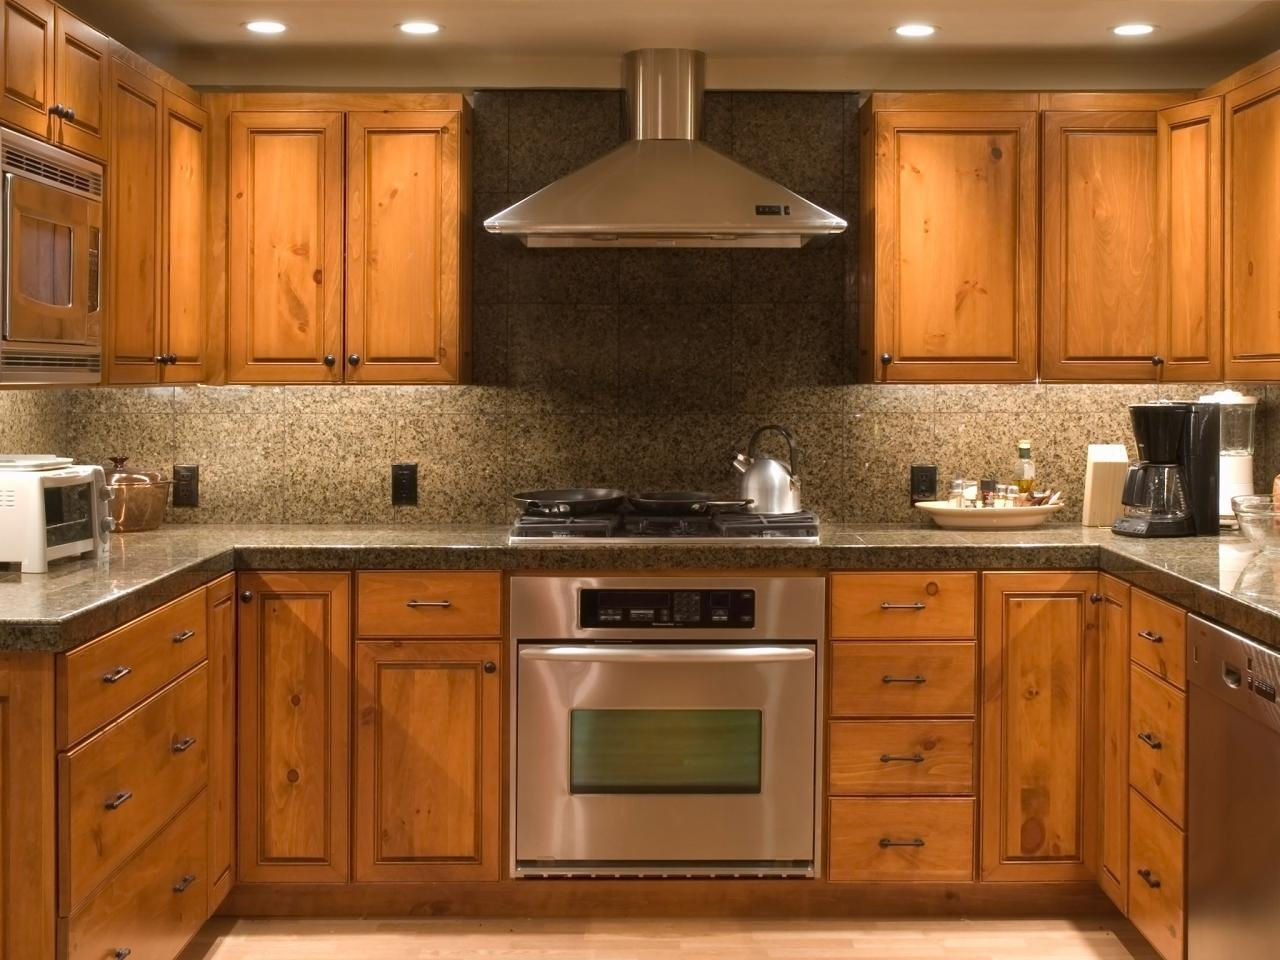 Painting Painting Oak Cabinets White How To Paint Oak Kitchen In Oak Cupboards (View 7 of 15)